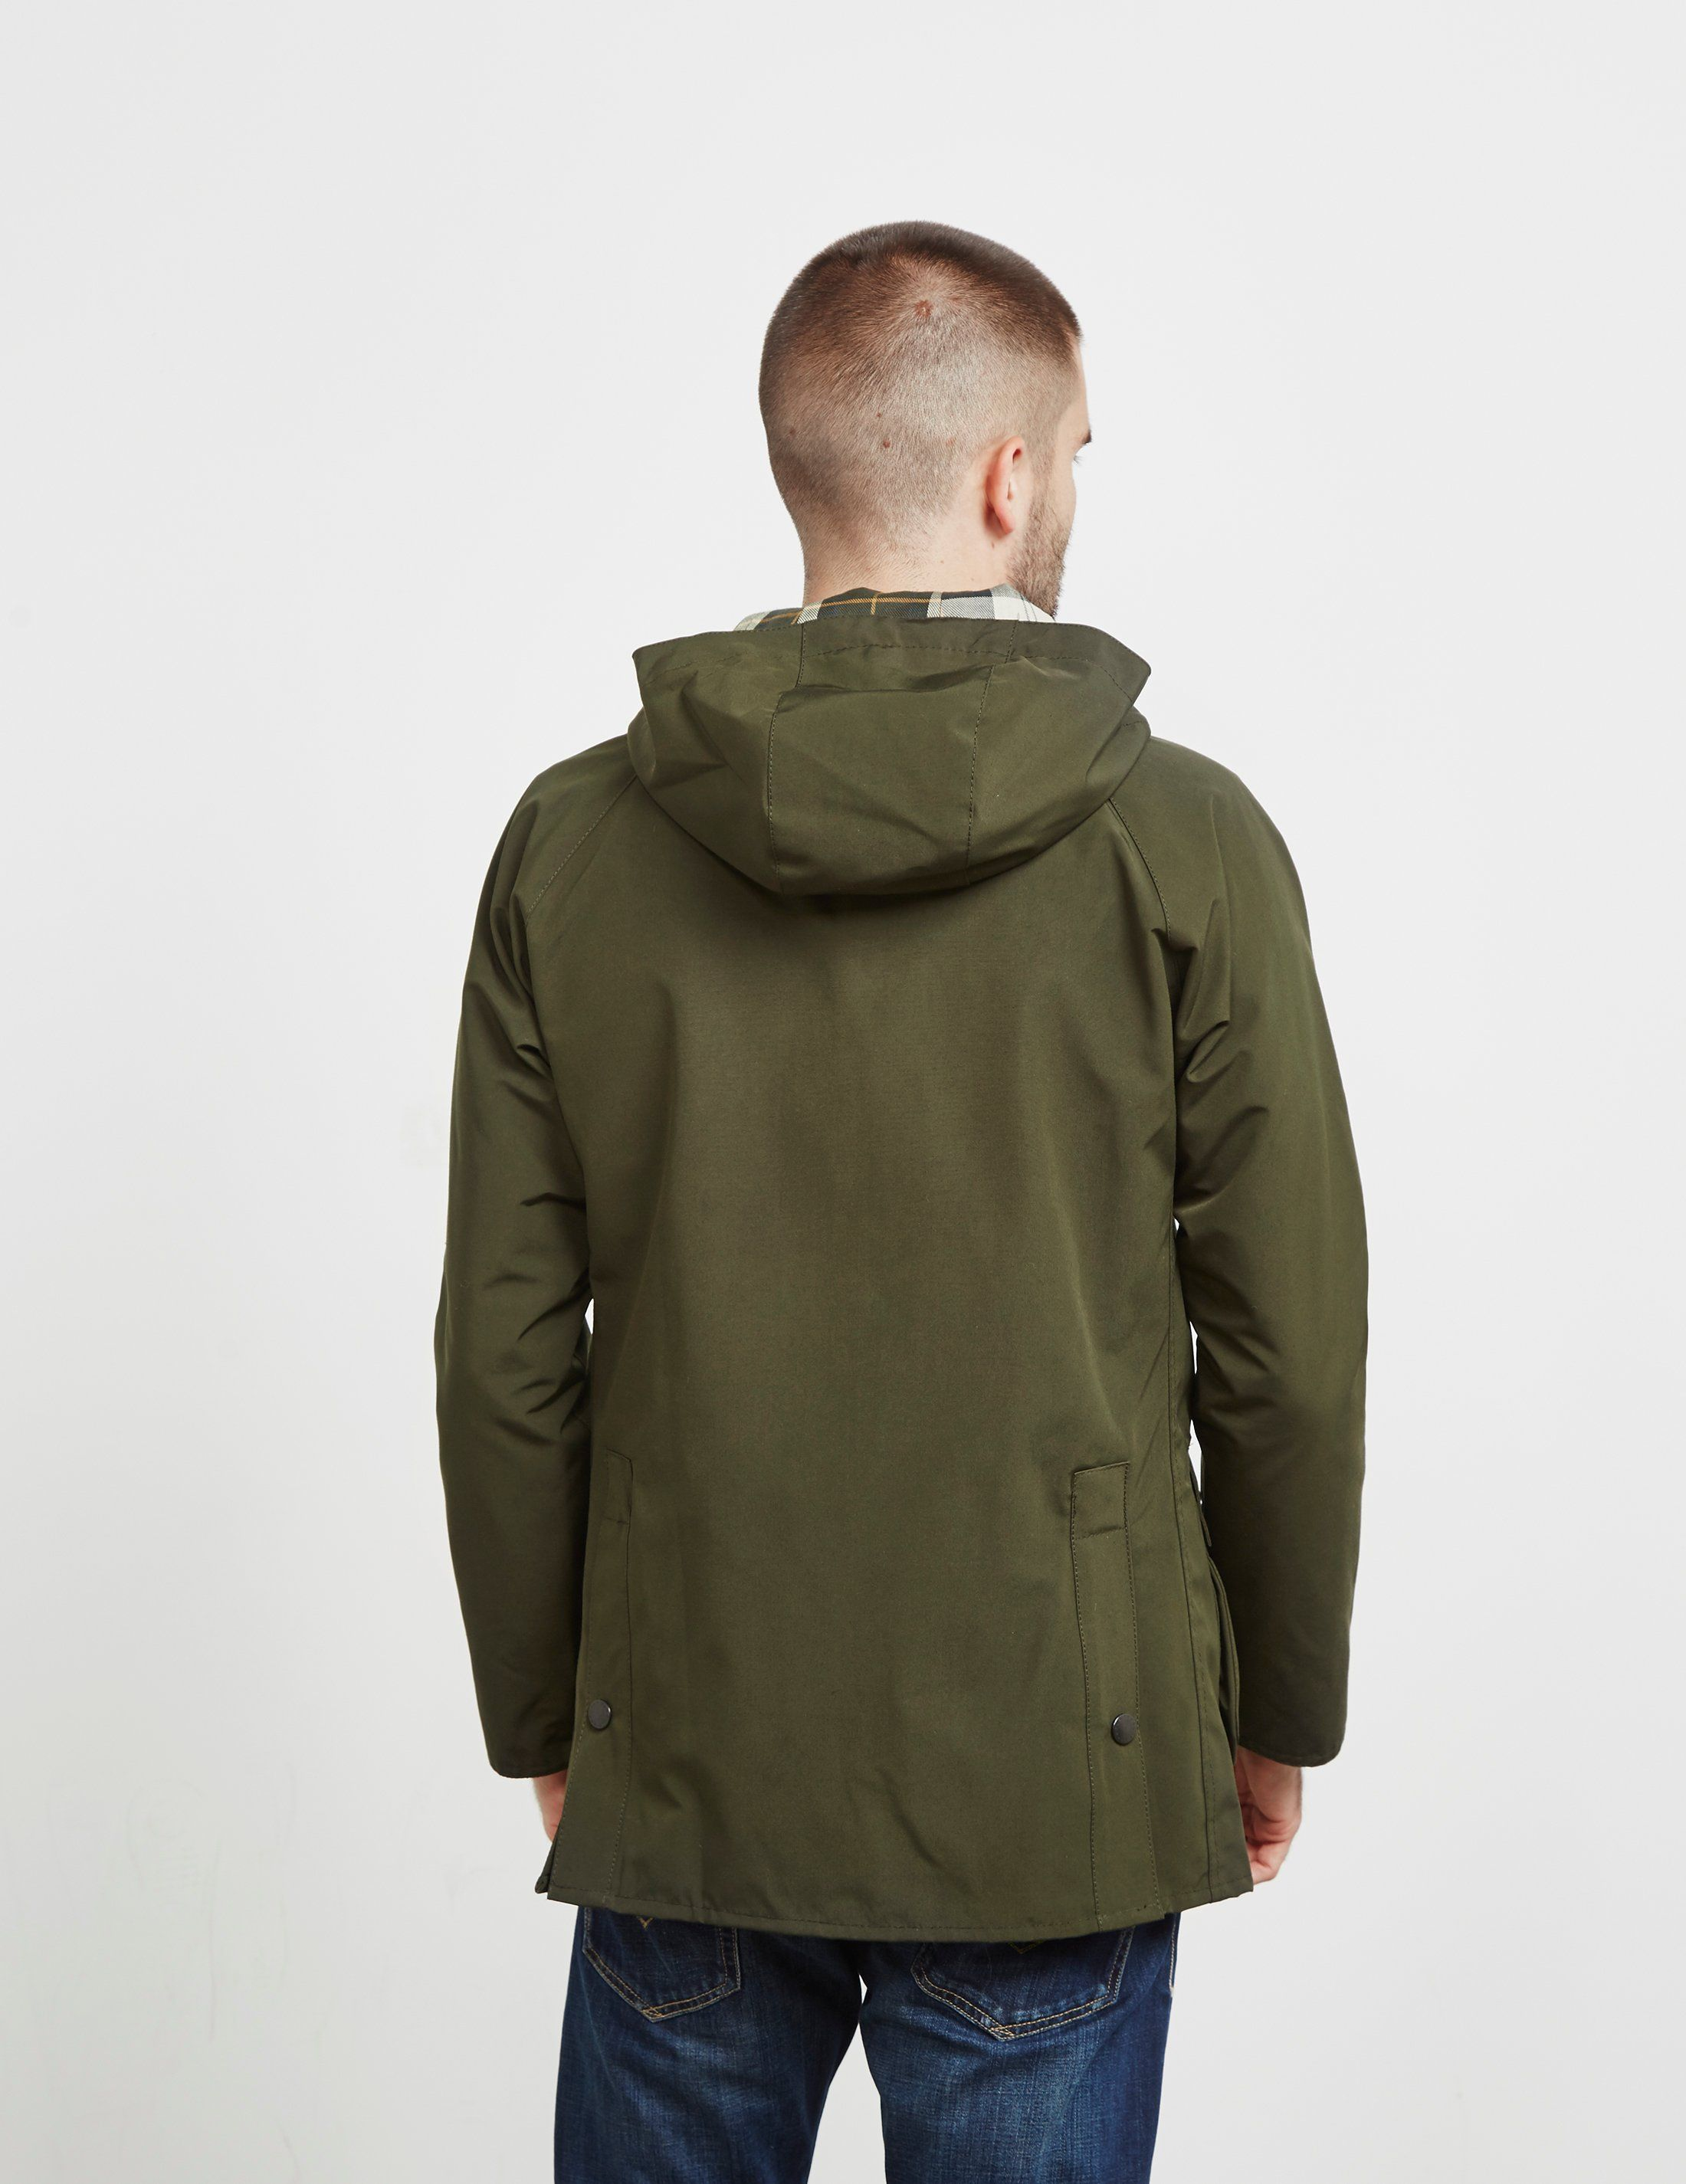 Barbour Bedale Hooded Jacket - Online Exclusive